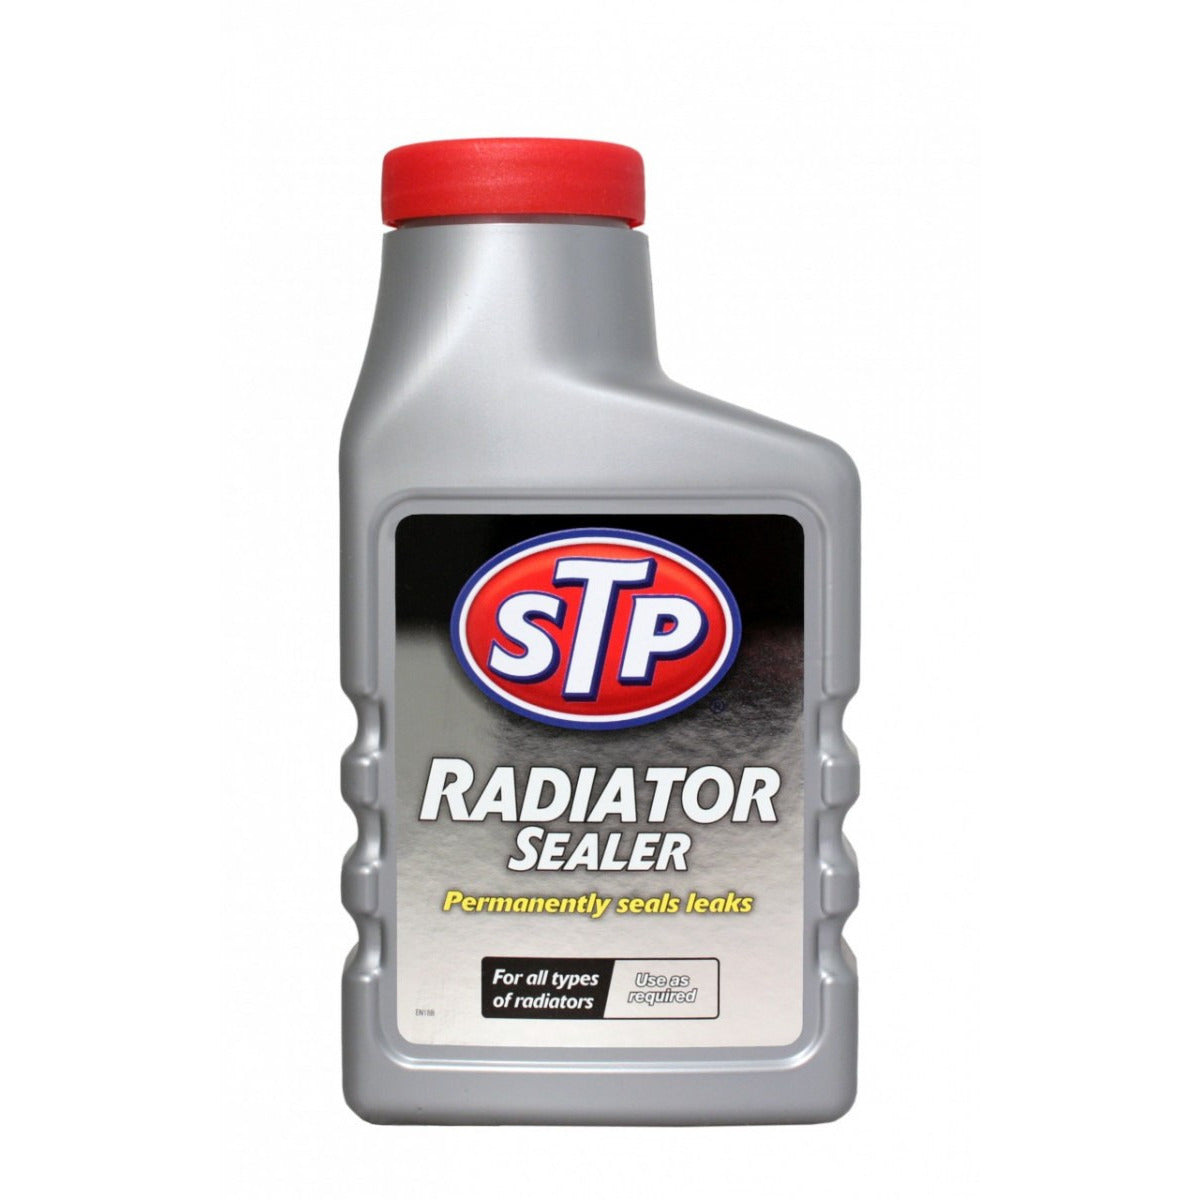 STP Radiator Sealer (300 ml)